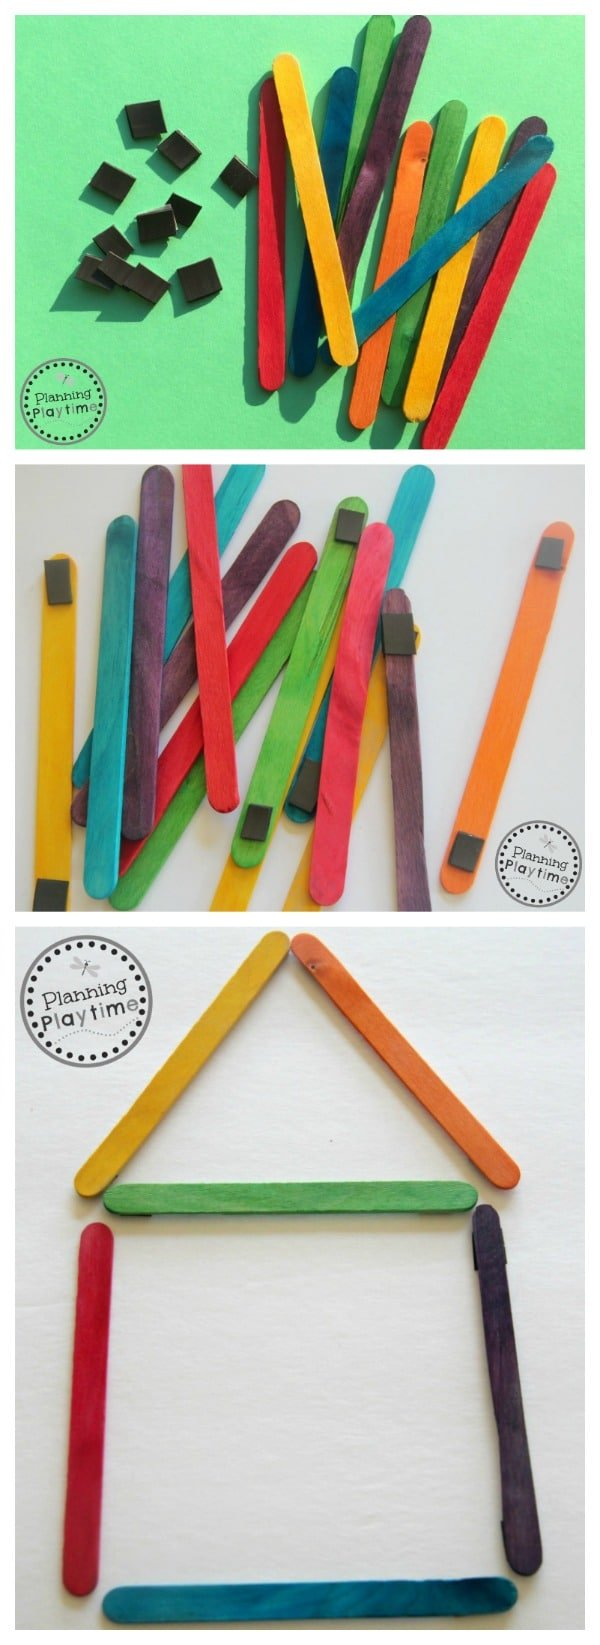 DIY Popsicle Stick Shape Building Magnets